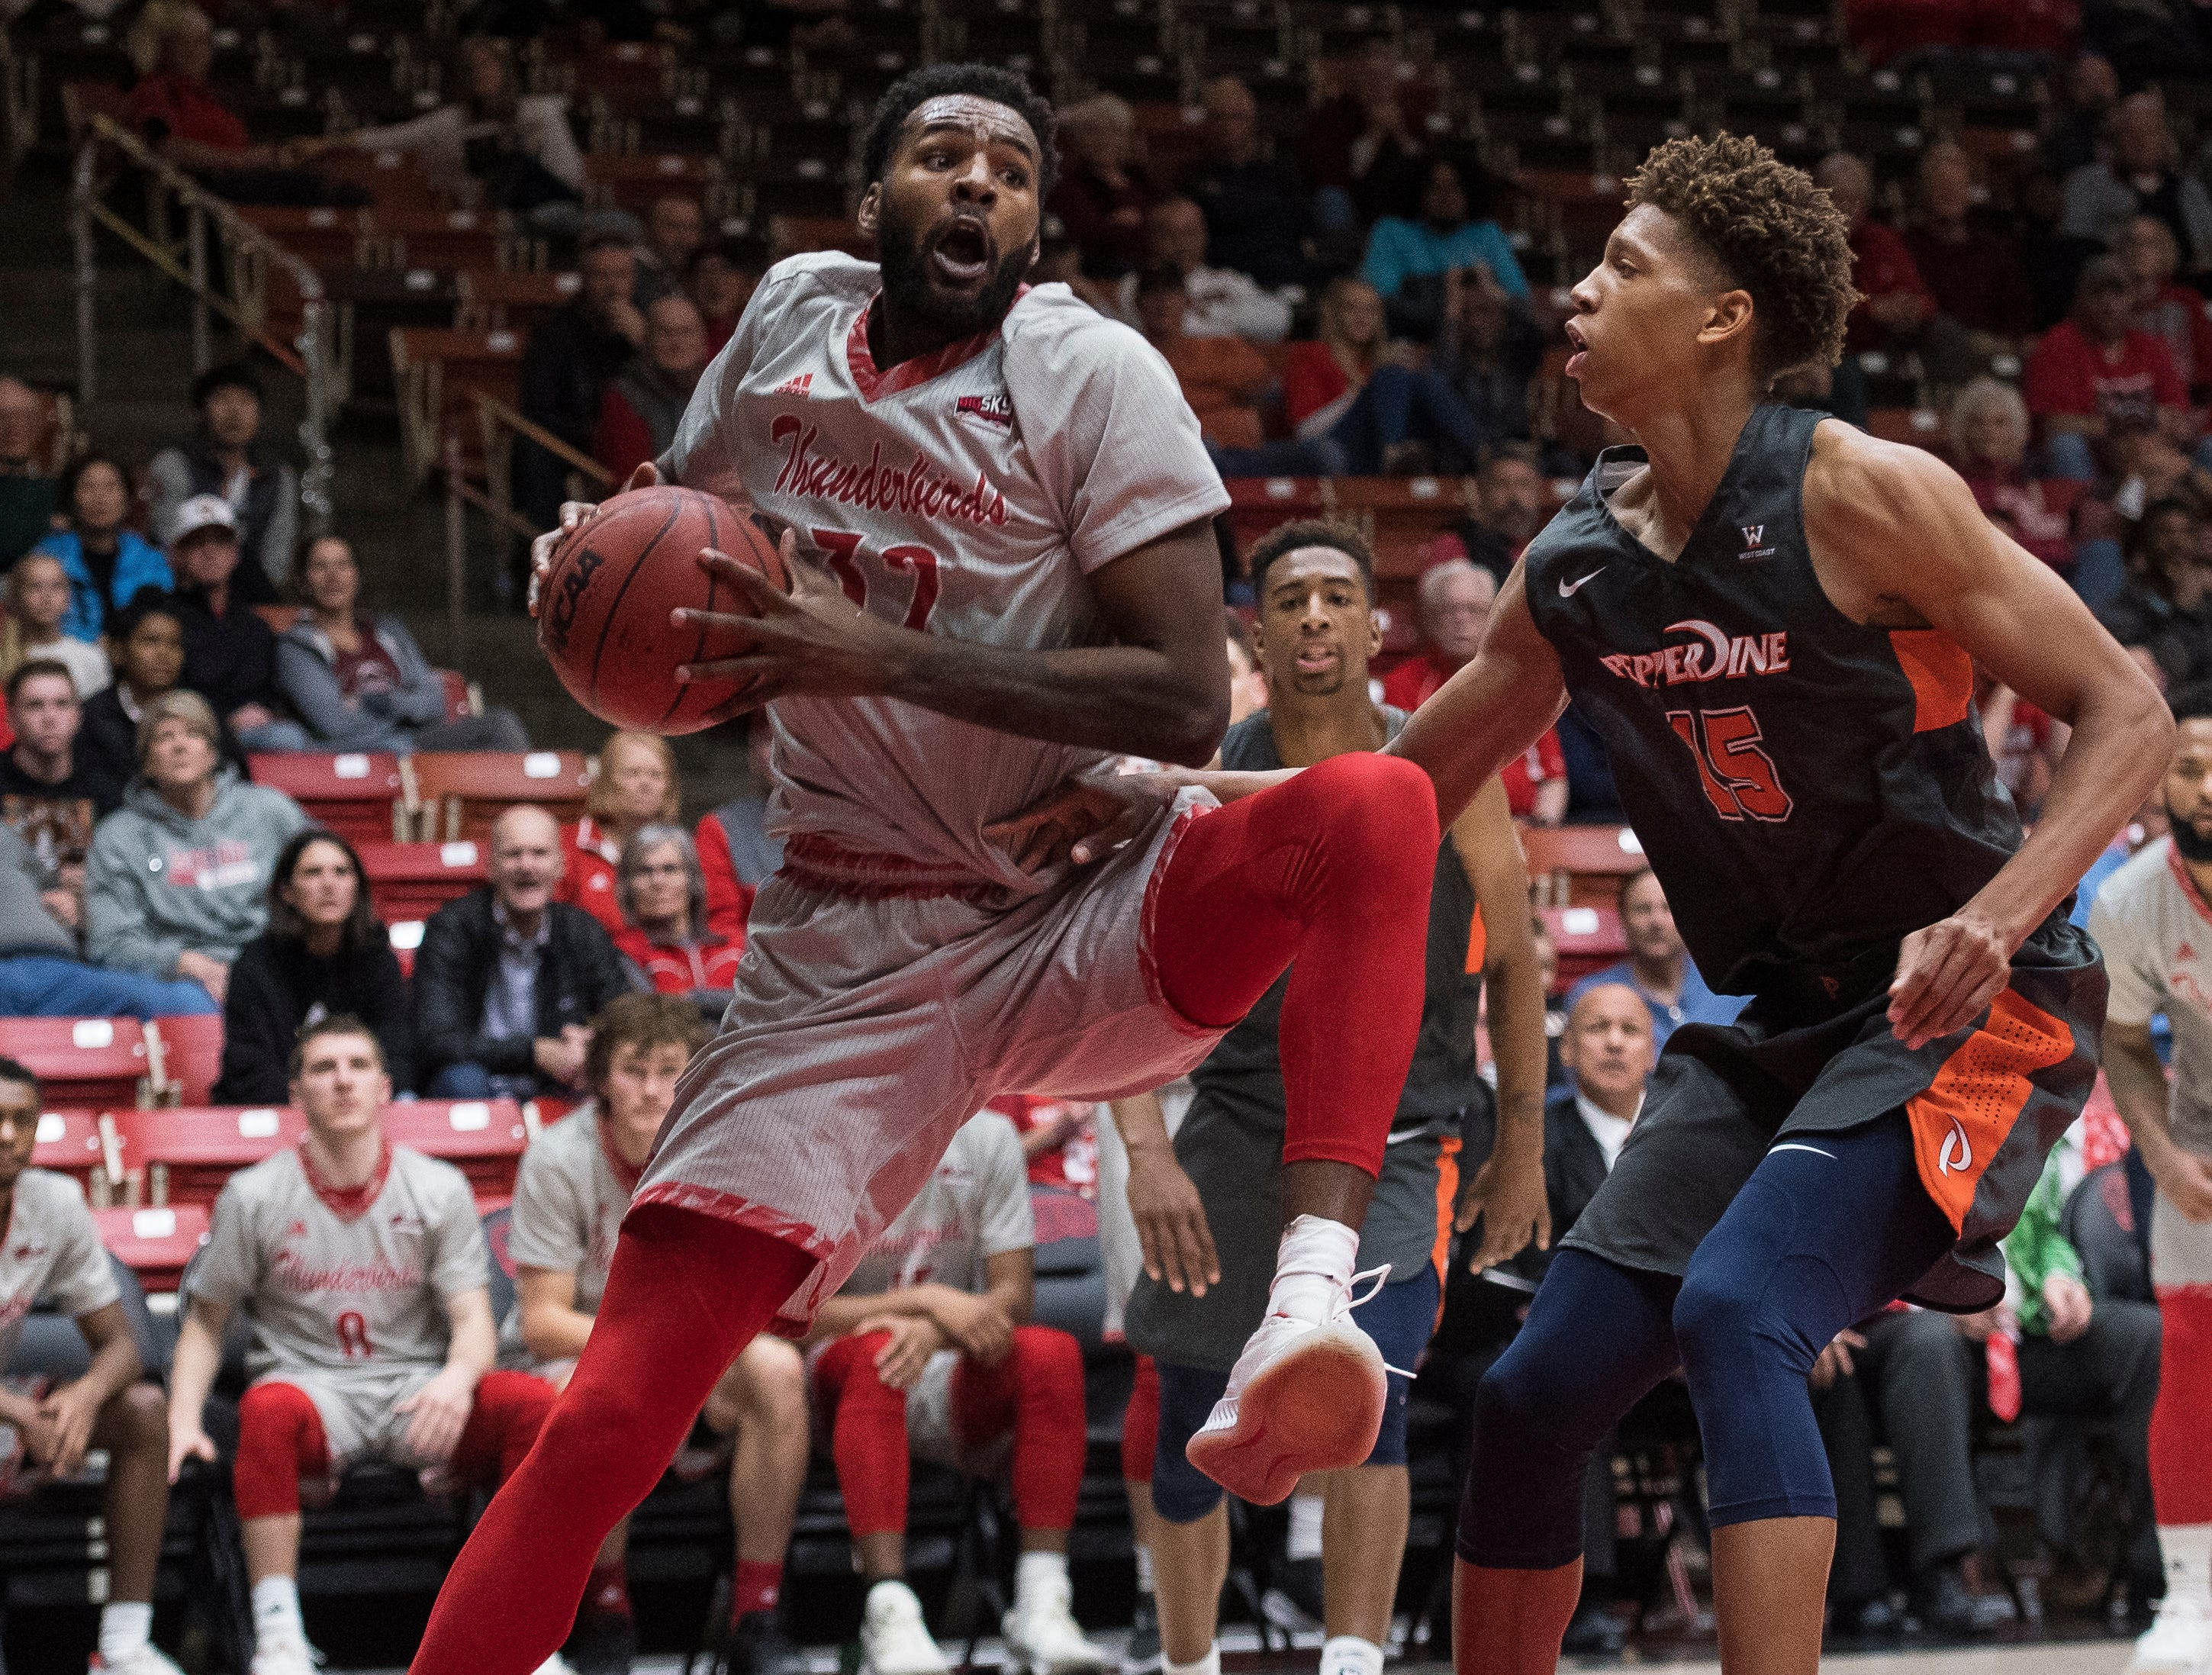 Southern Utah University junior Andre Adams (32) rebounds the ball against Pepperdine University in the America First Event Center Saturday, December 15, 2018. SUU won in overtime, 78-69.